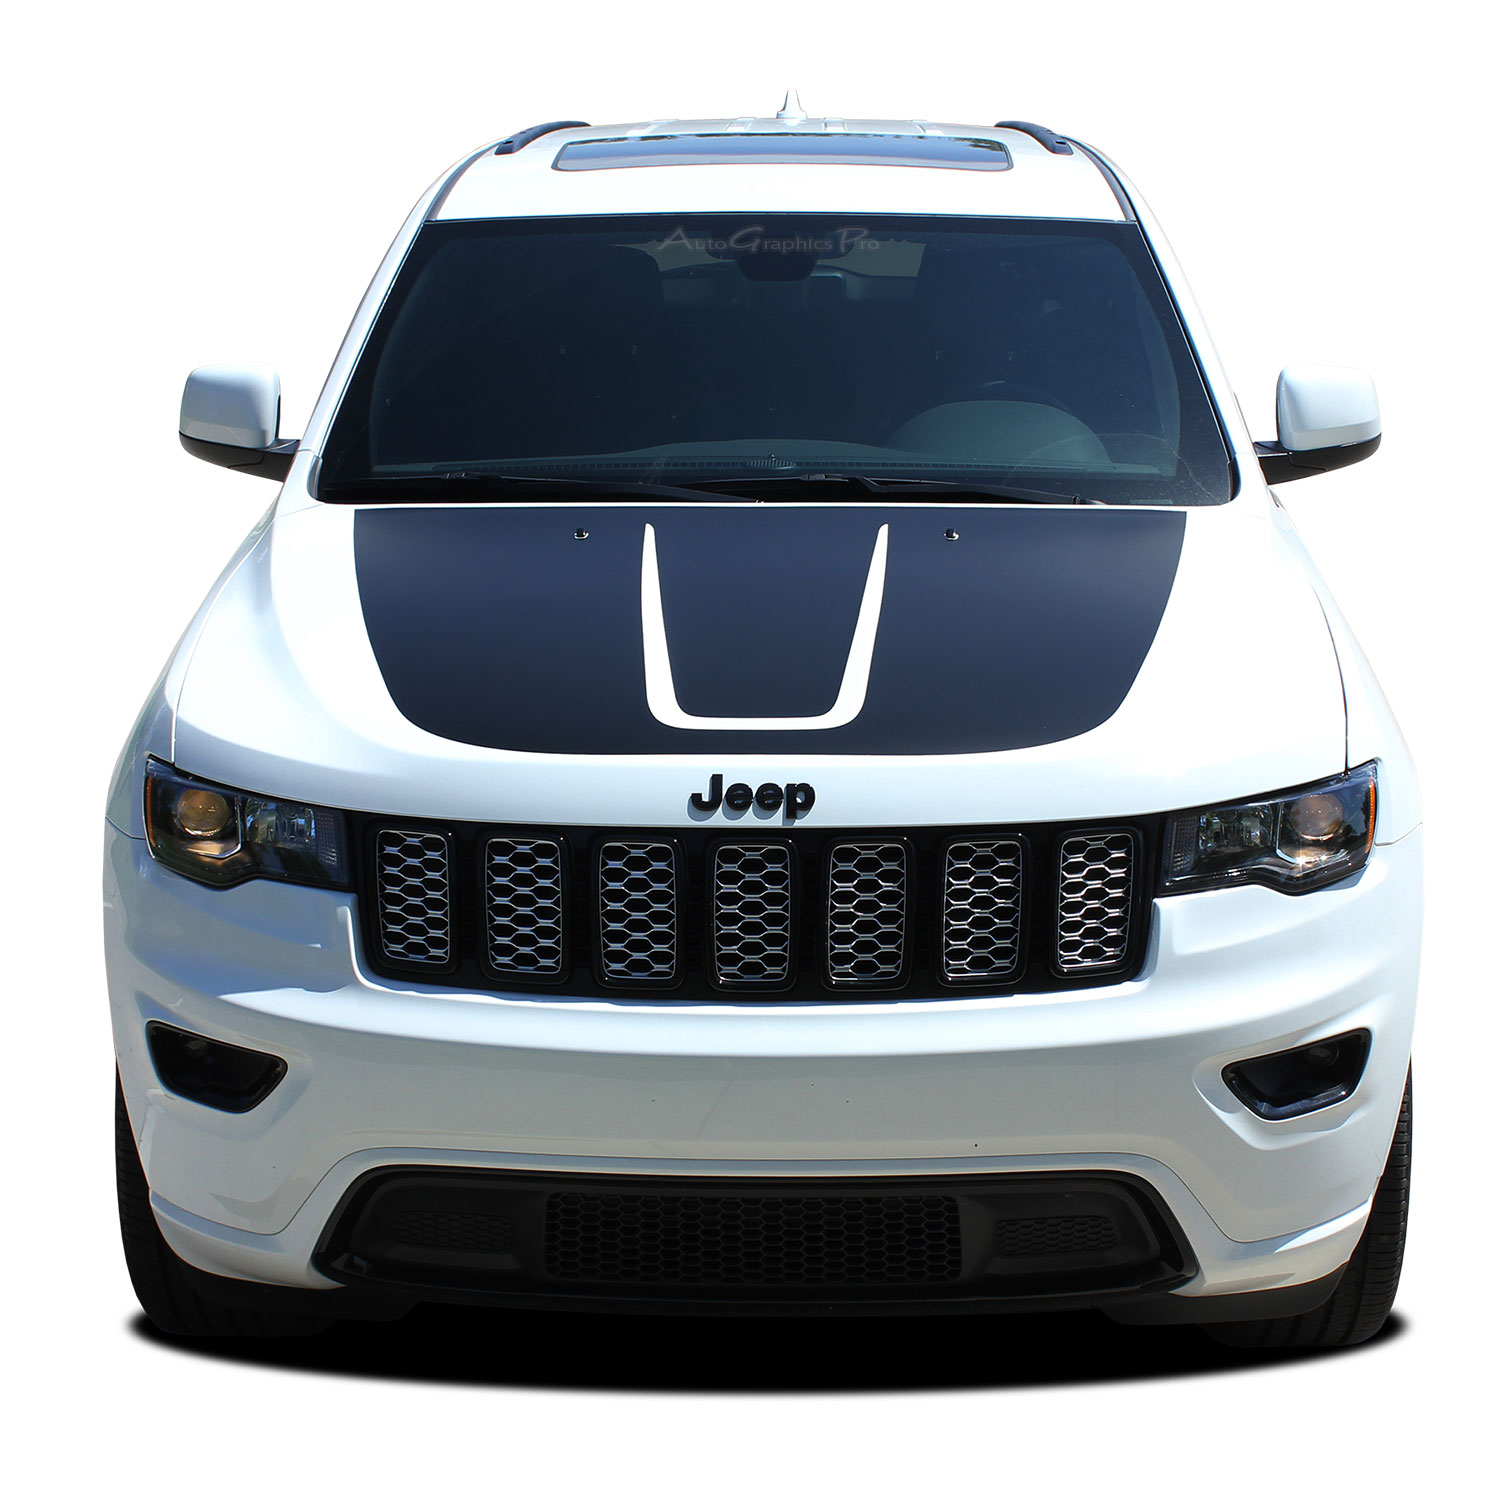 2011-2019 Jeep Grand Cherokee Trailhawk Hood Decal TRAIL